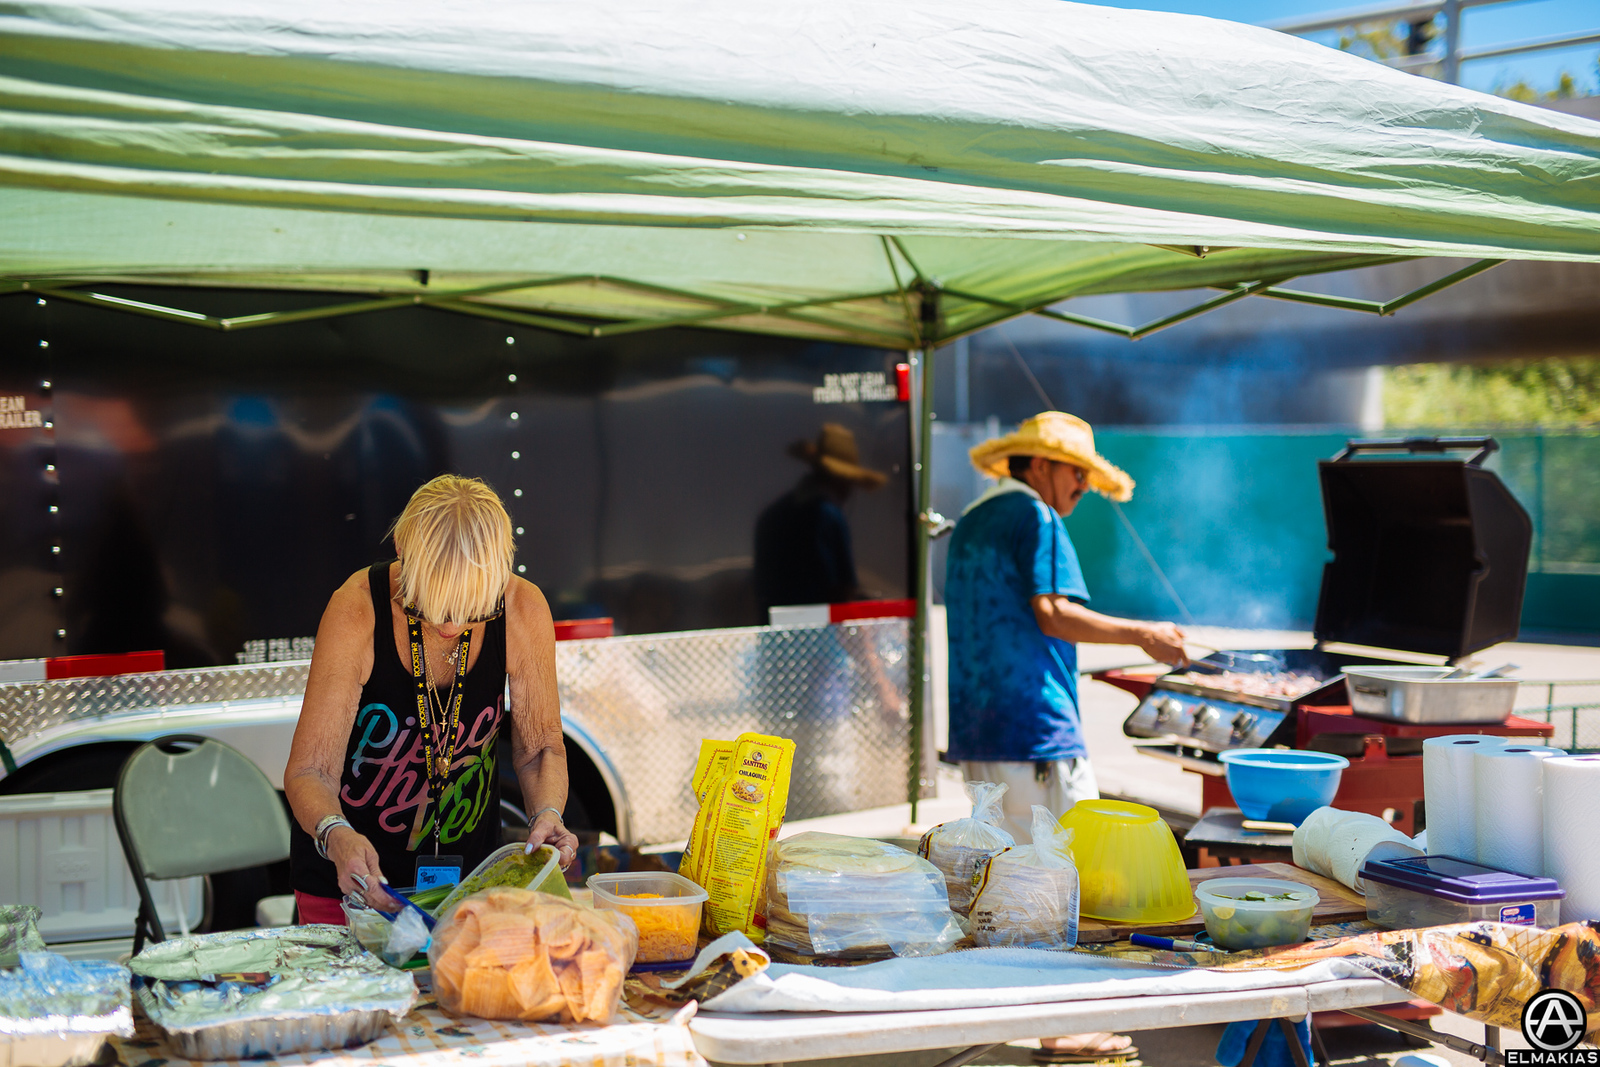 Catering at Warped Tour 2015 by Adam Elmakias